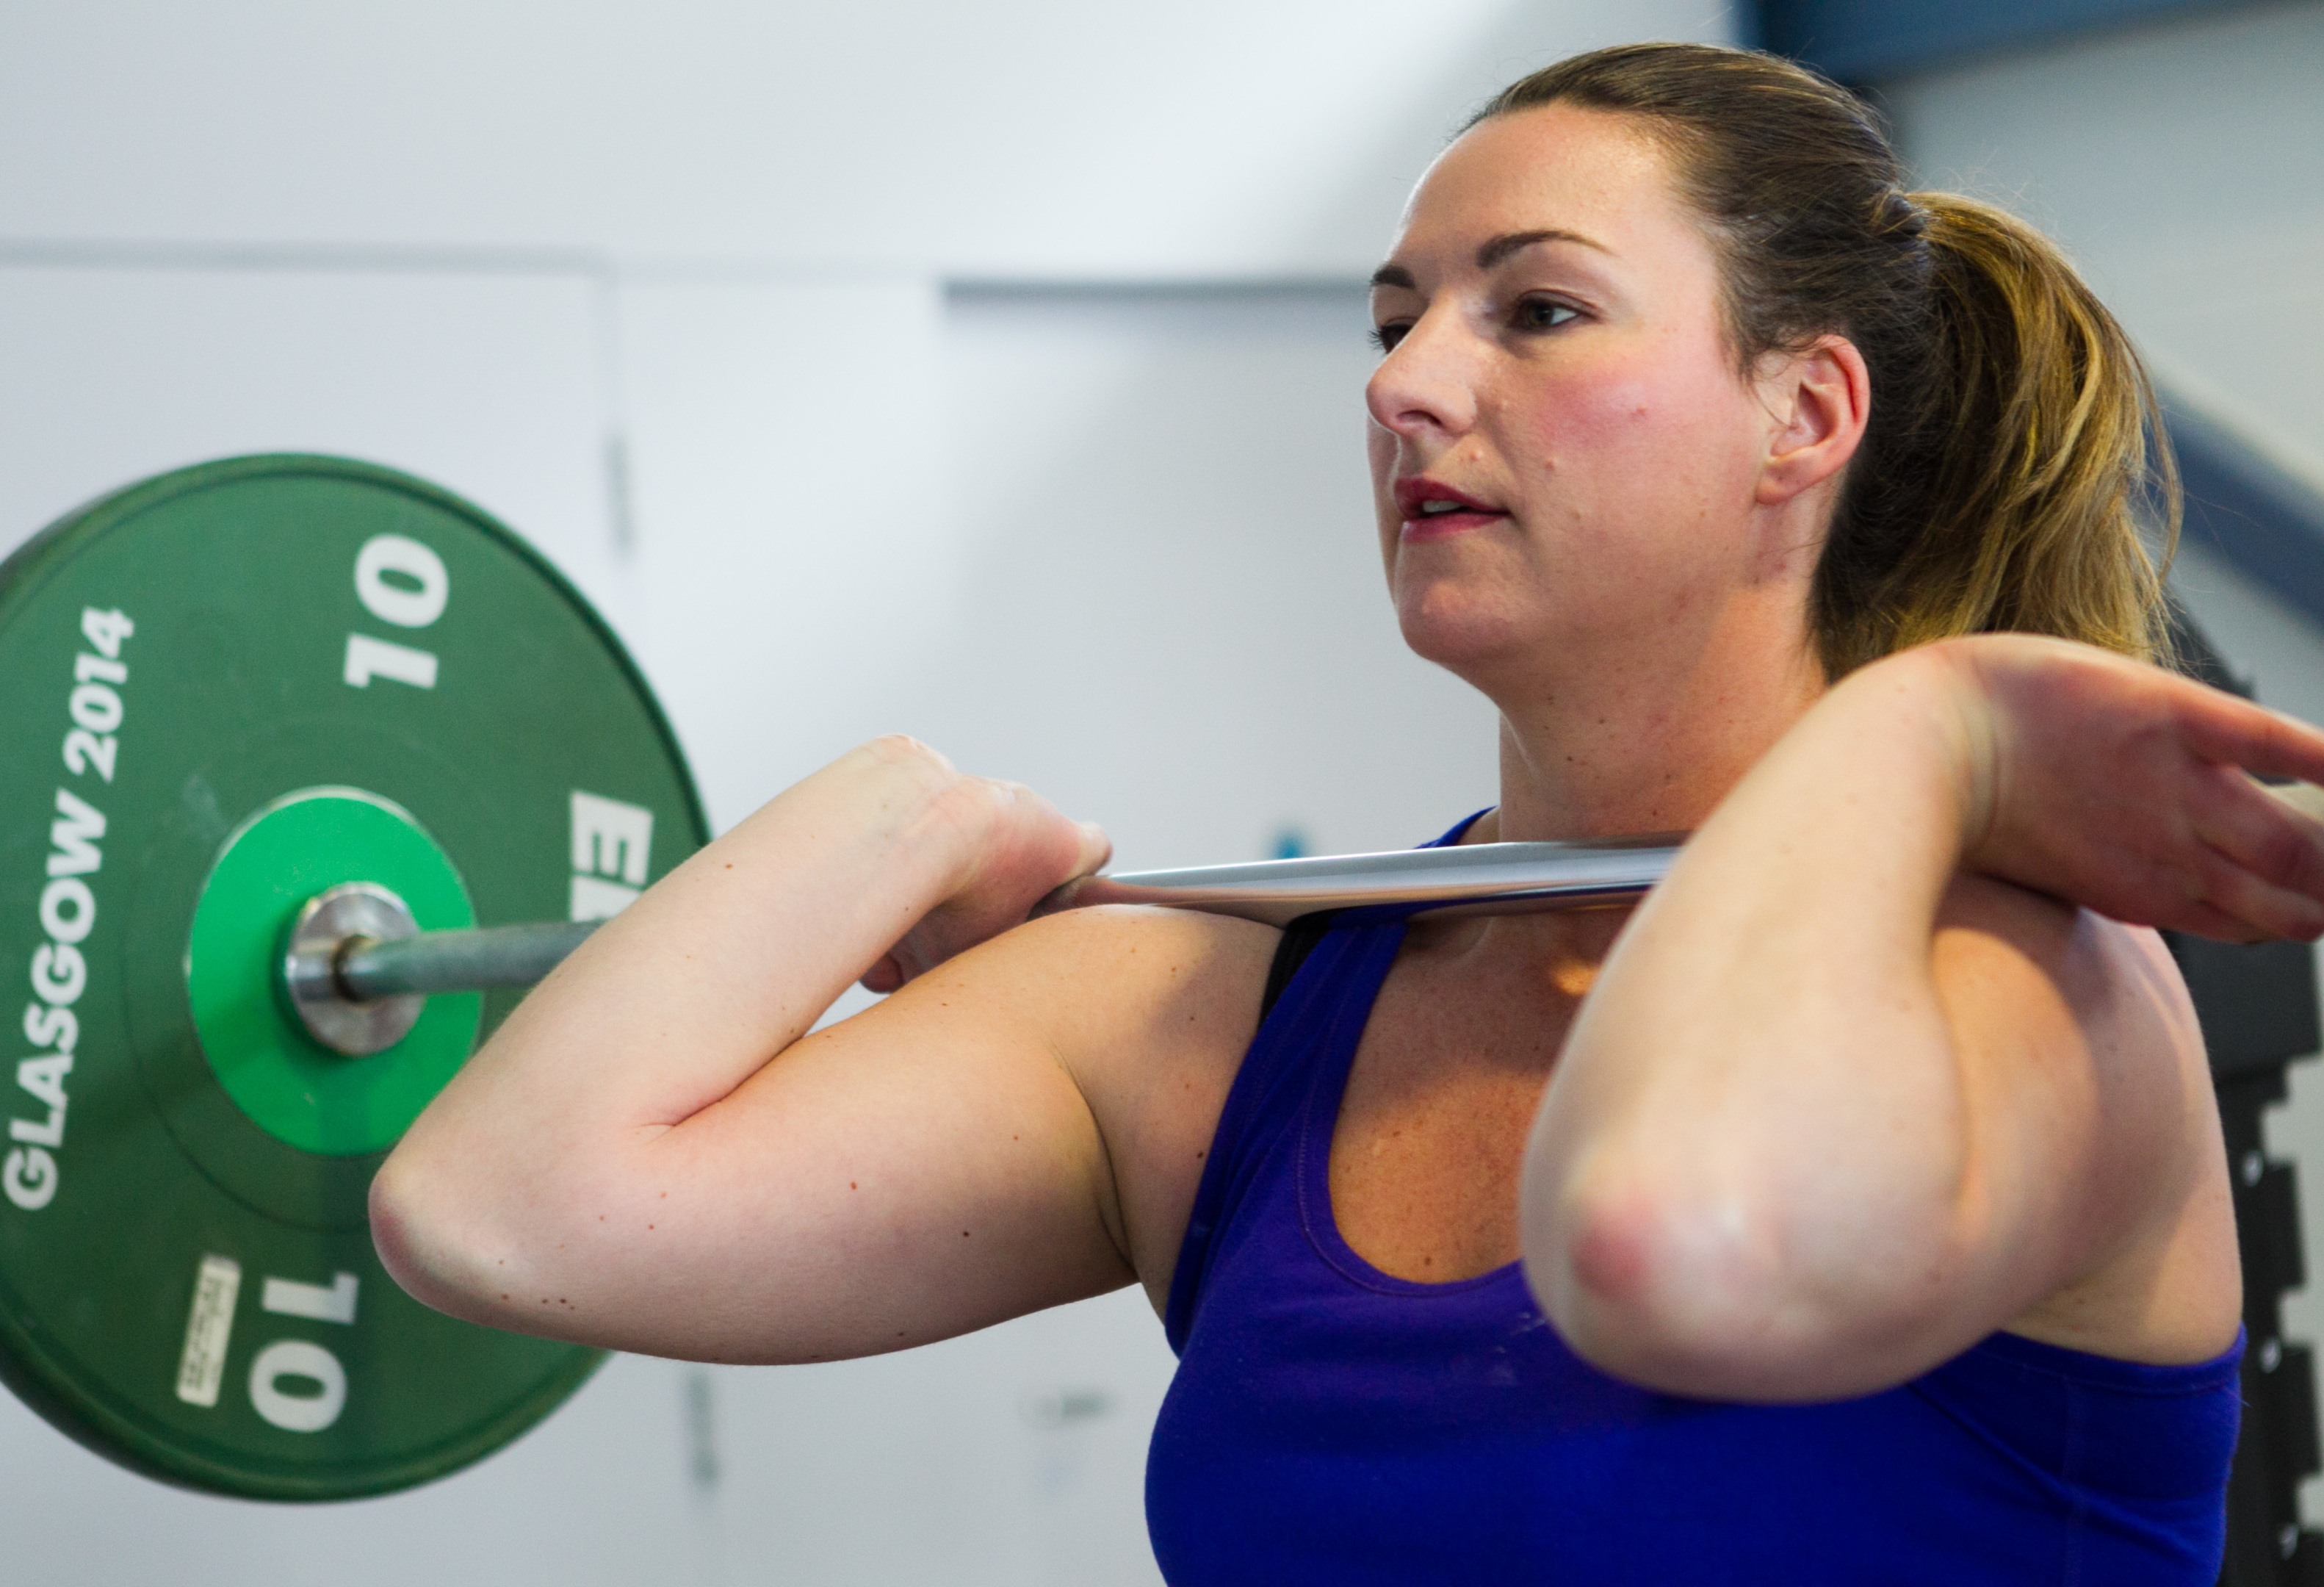 Helen Weavers, who is a lecturer at Dundee University, and also a champion weightlifter.